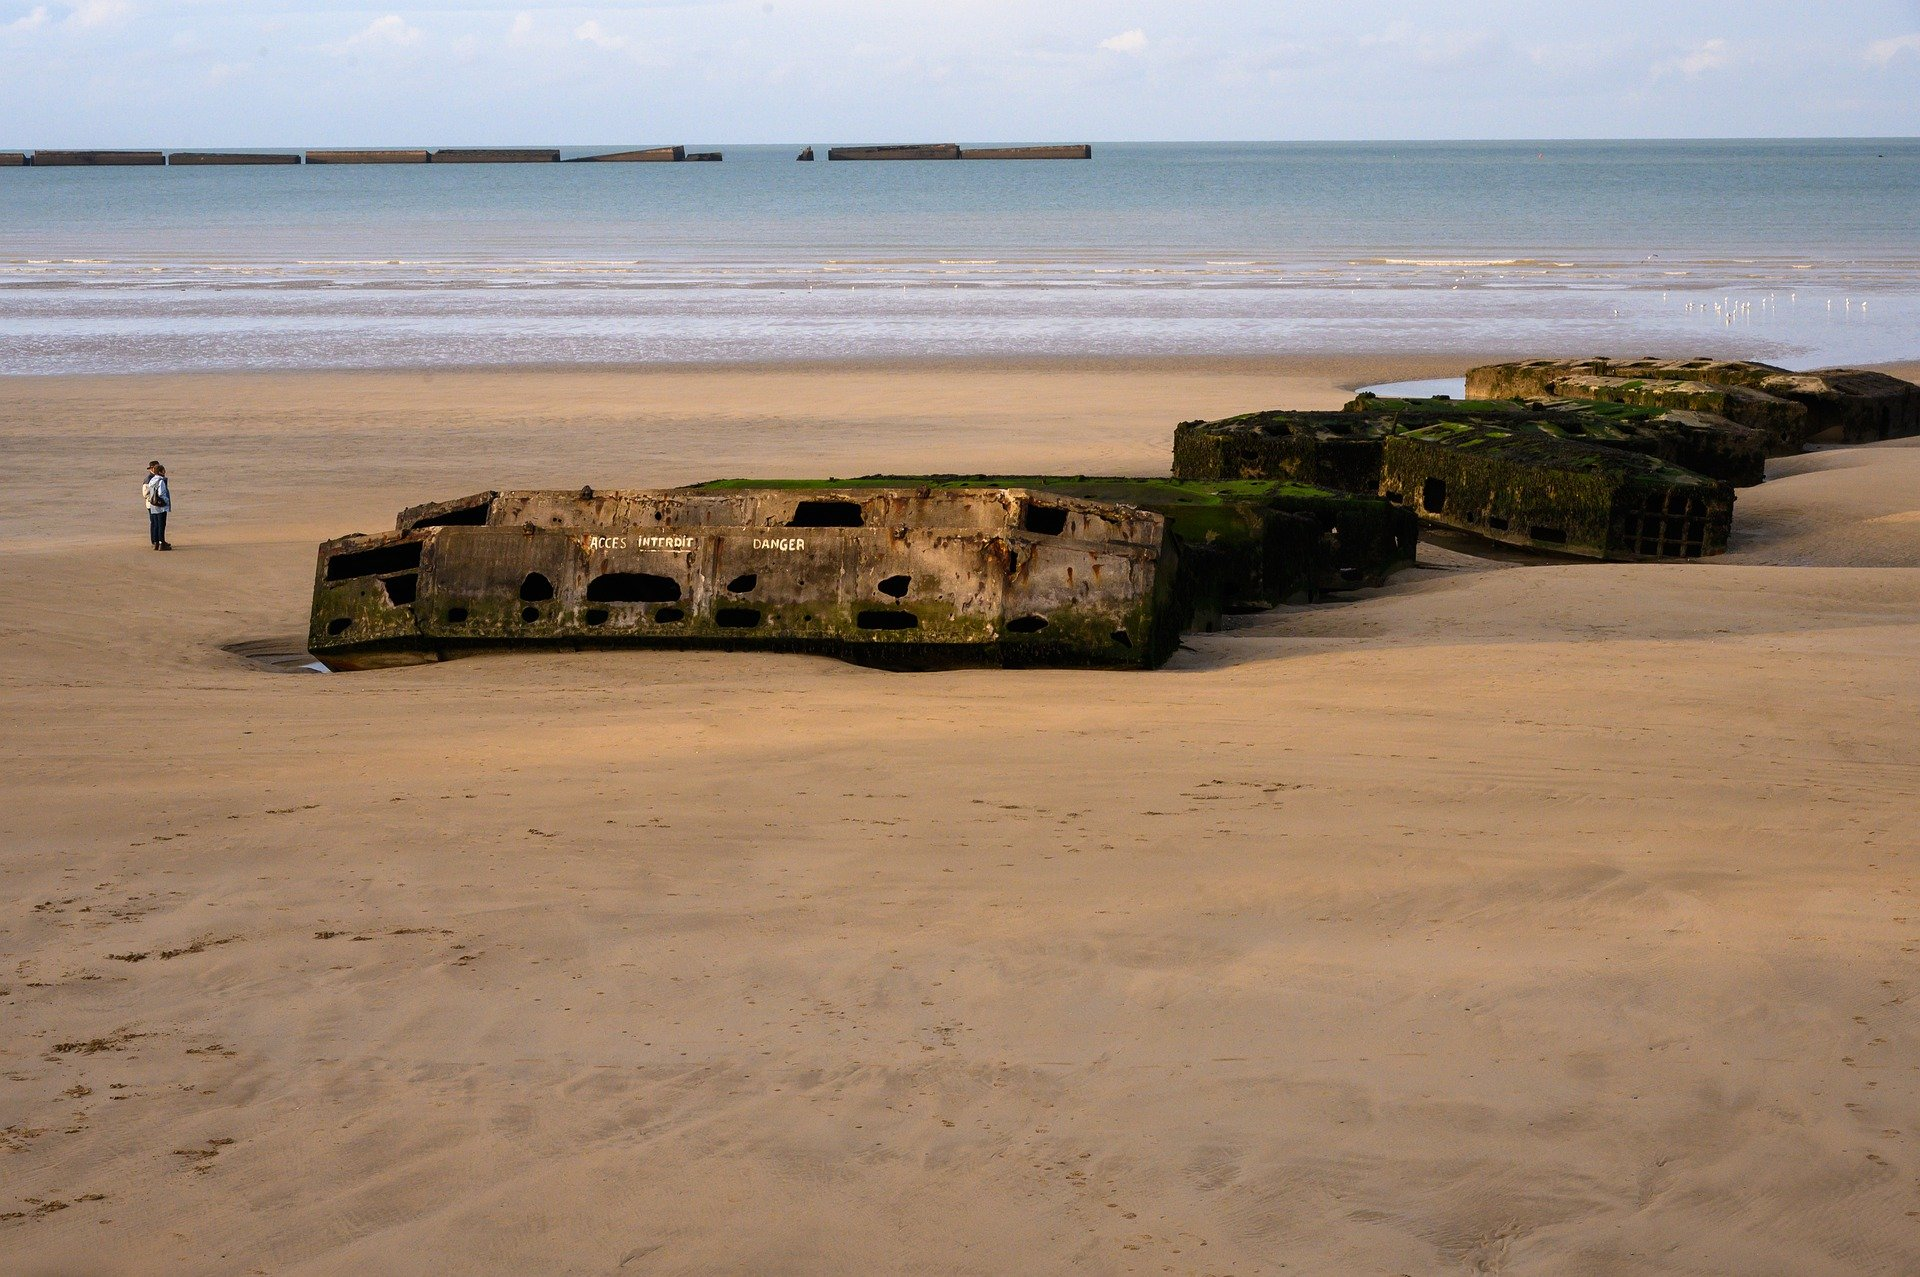 dday beach in normandy